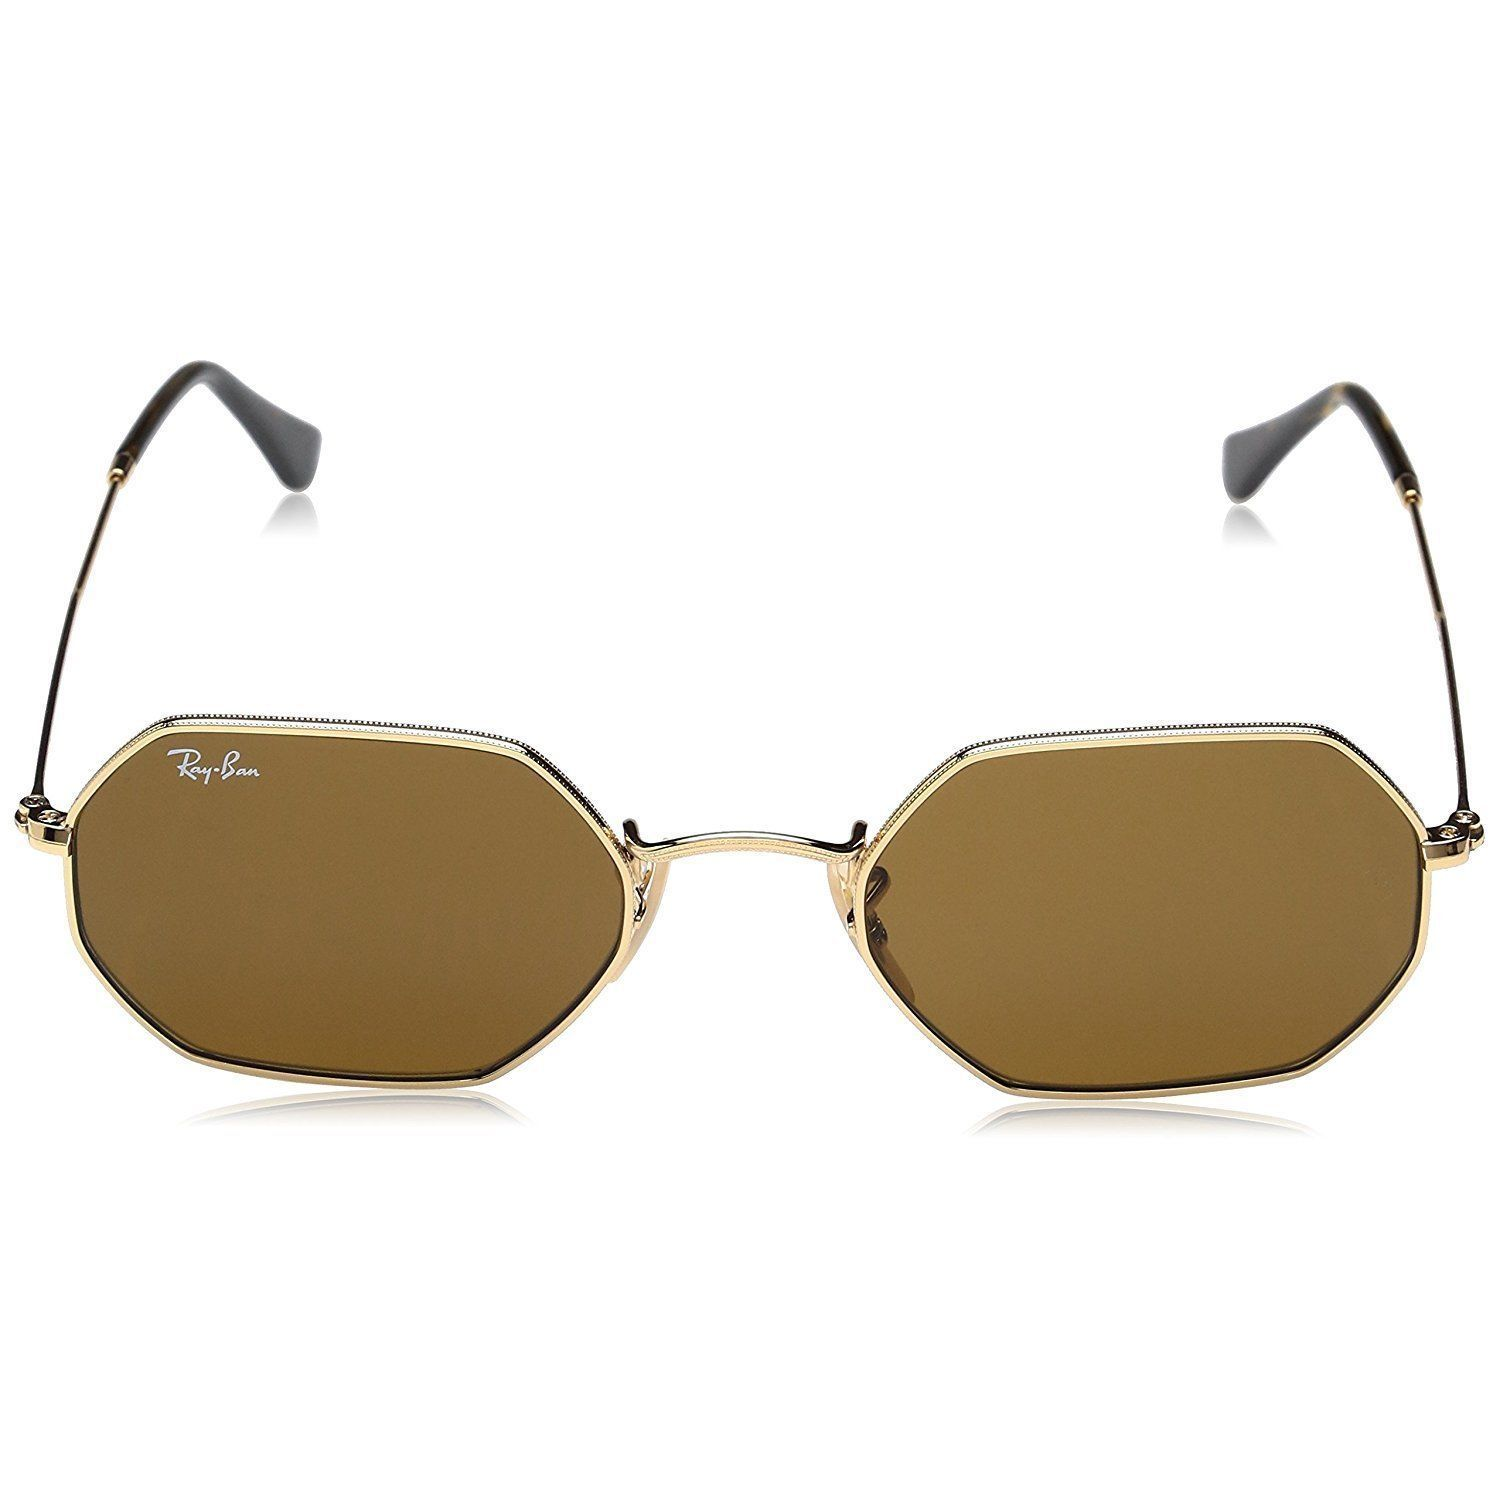 e9ce090153 Shop Ray-Ban Octagonal RB3556N 001 33 Unisex Gold Frame Brown Classic Lens  Sunglasses - Free Shipping Today - Overstock - 15079074